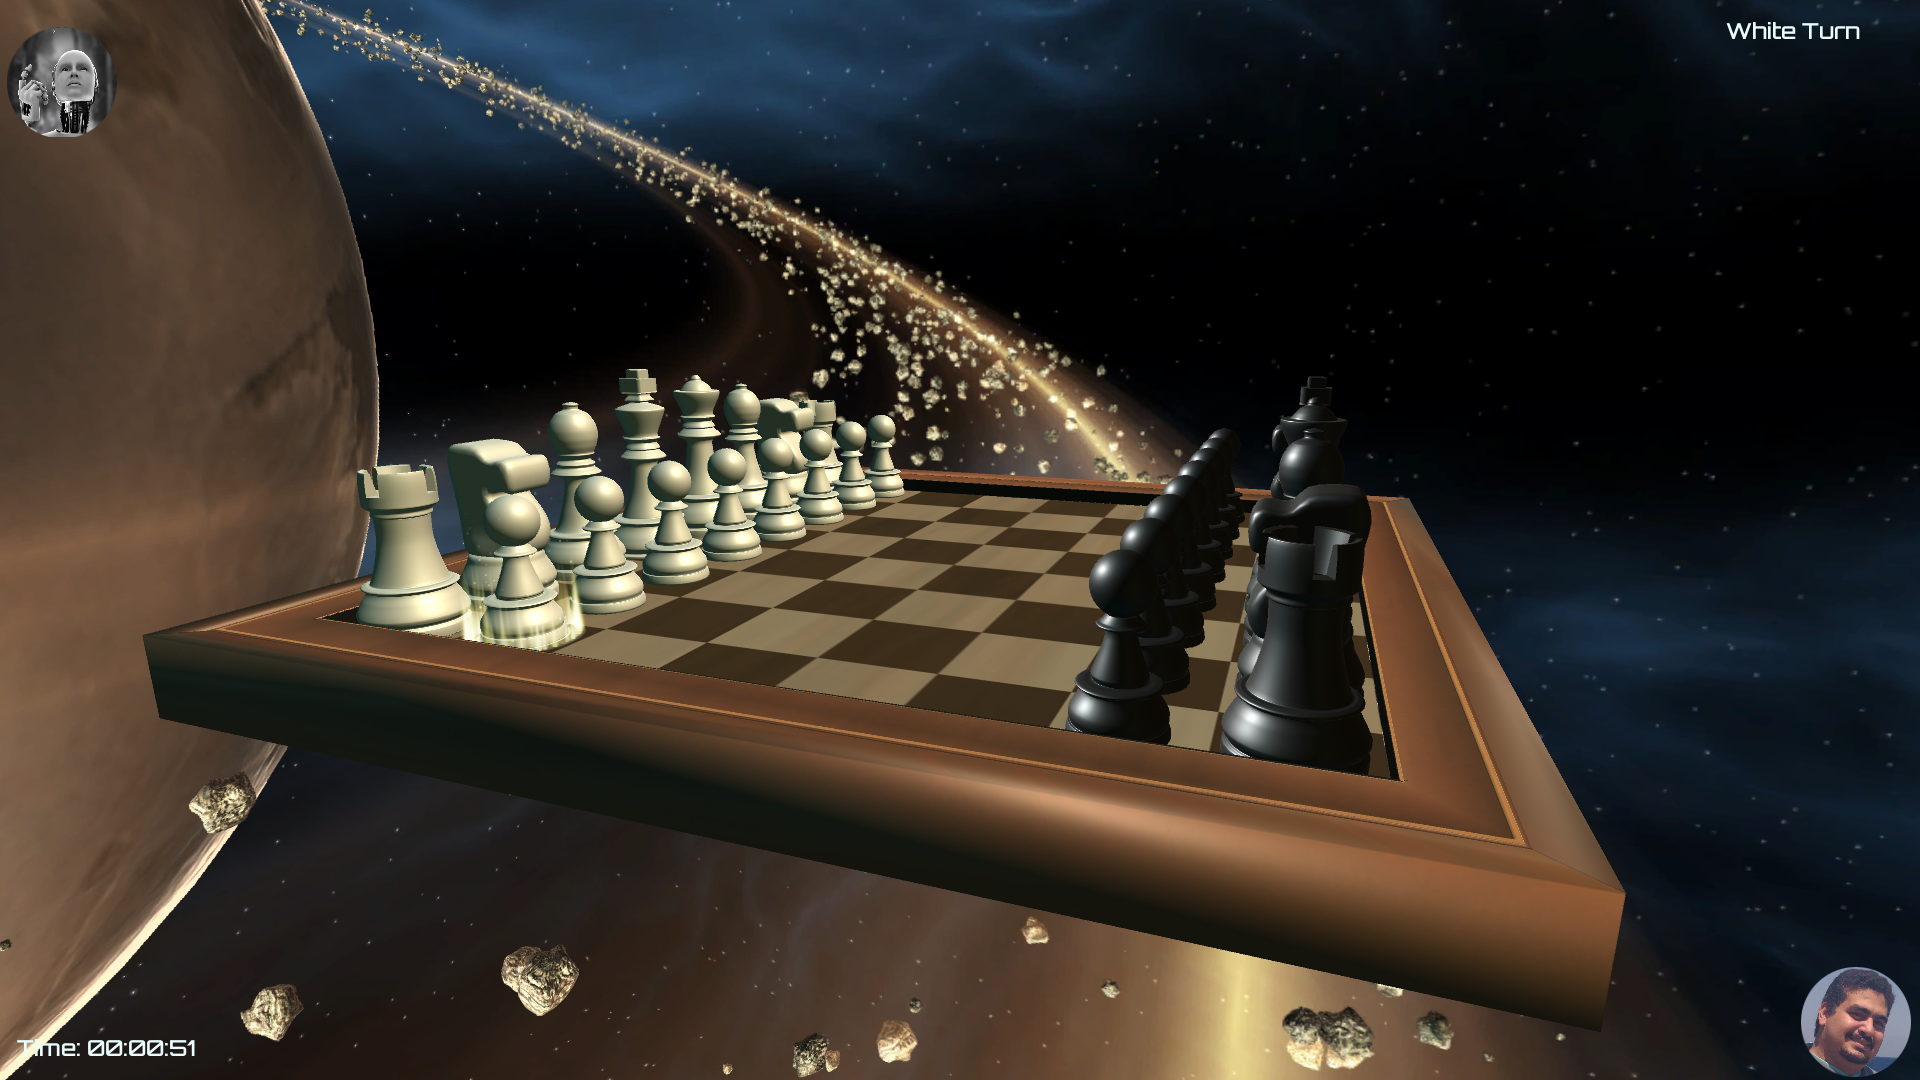 3D Space Chess